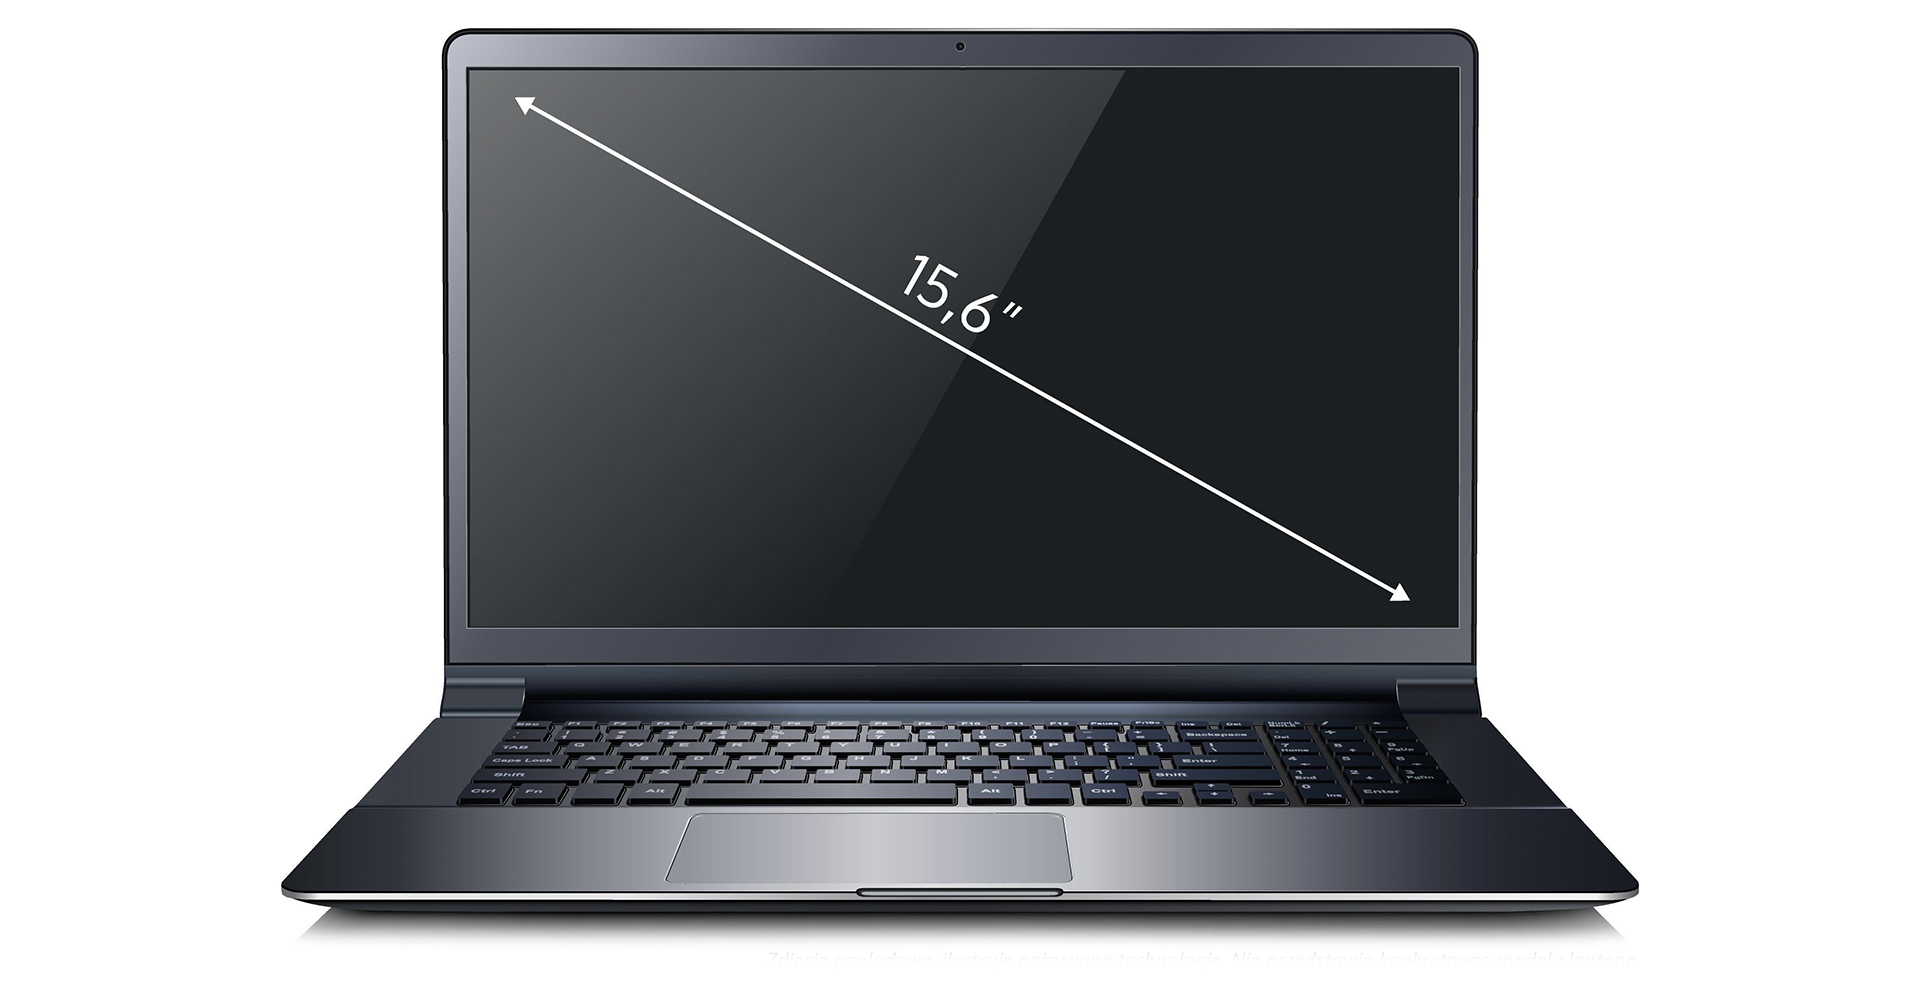 Fujitsu LifeBook A357 (S26391K425V300) 4 GB RAM/ 256 GB SSD/ 2TB HDD/ Windows 10 Pro                             15.6-tollise diagonaaliga